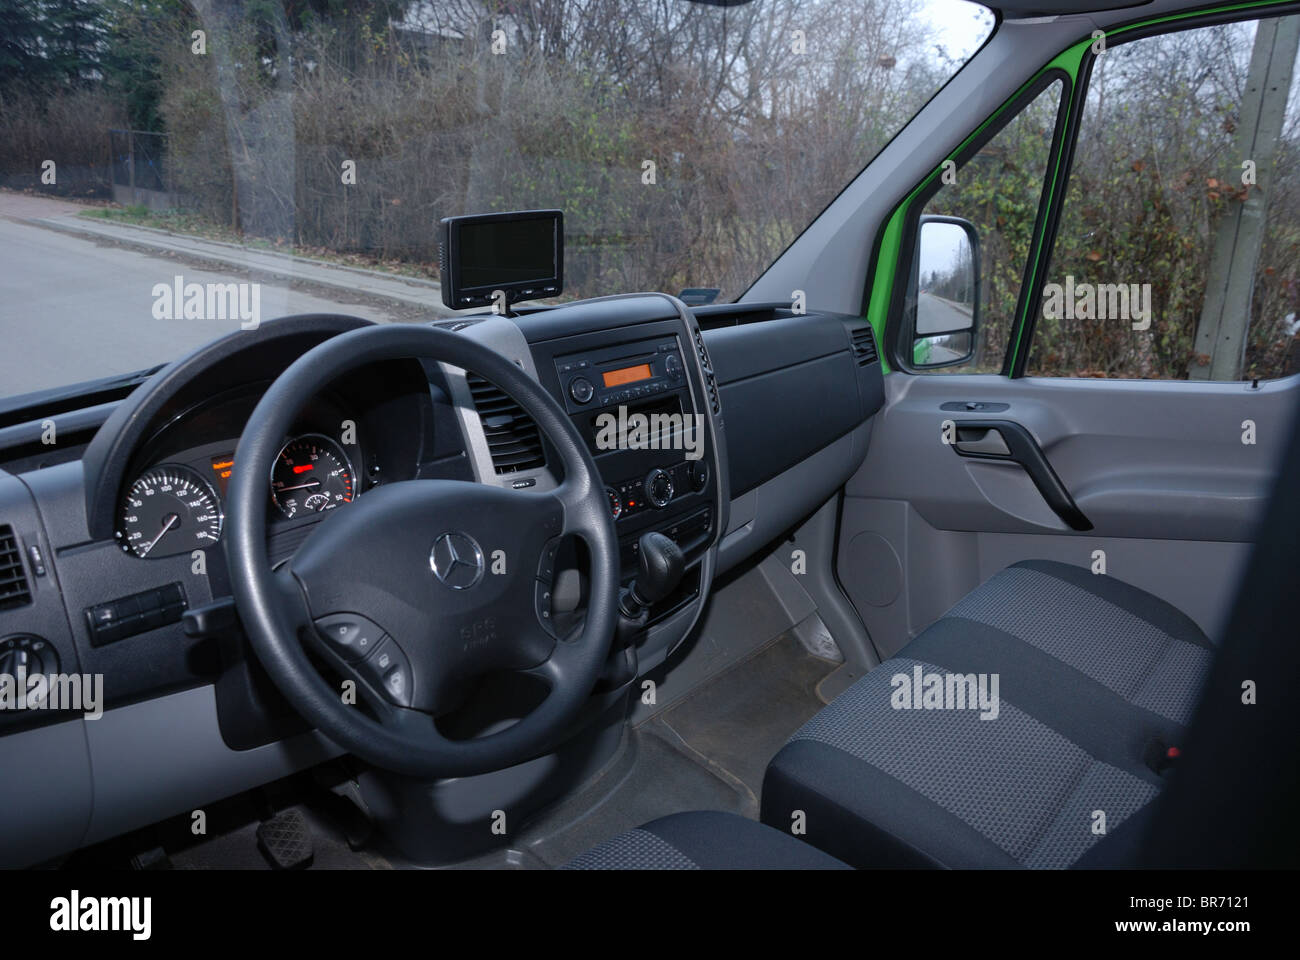 43e8634e2b Interior Cabin Mercedes Benz Sprinter Stock Photos   Interior Cabin ...